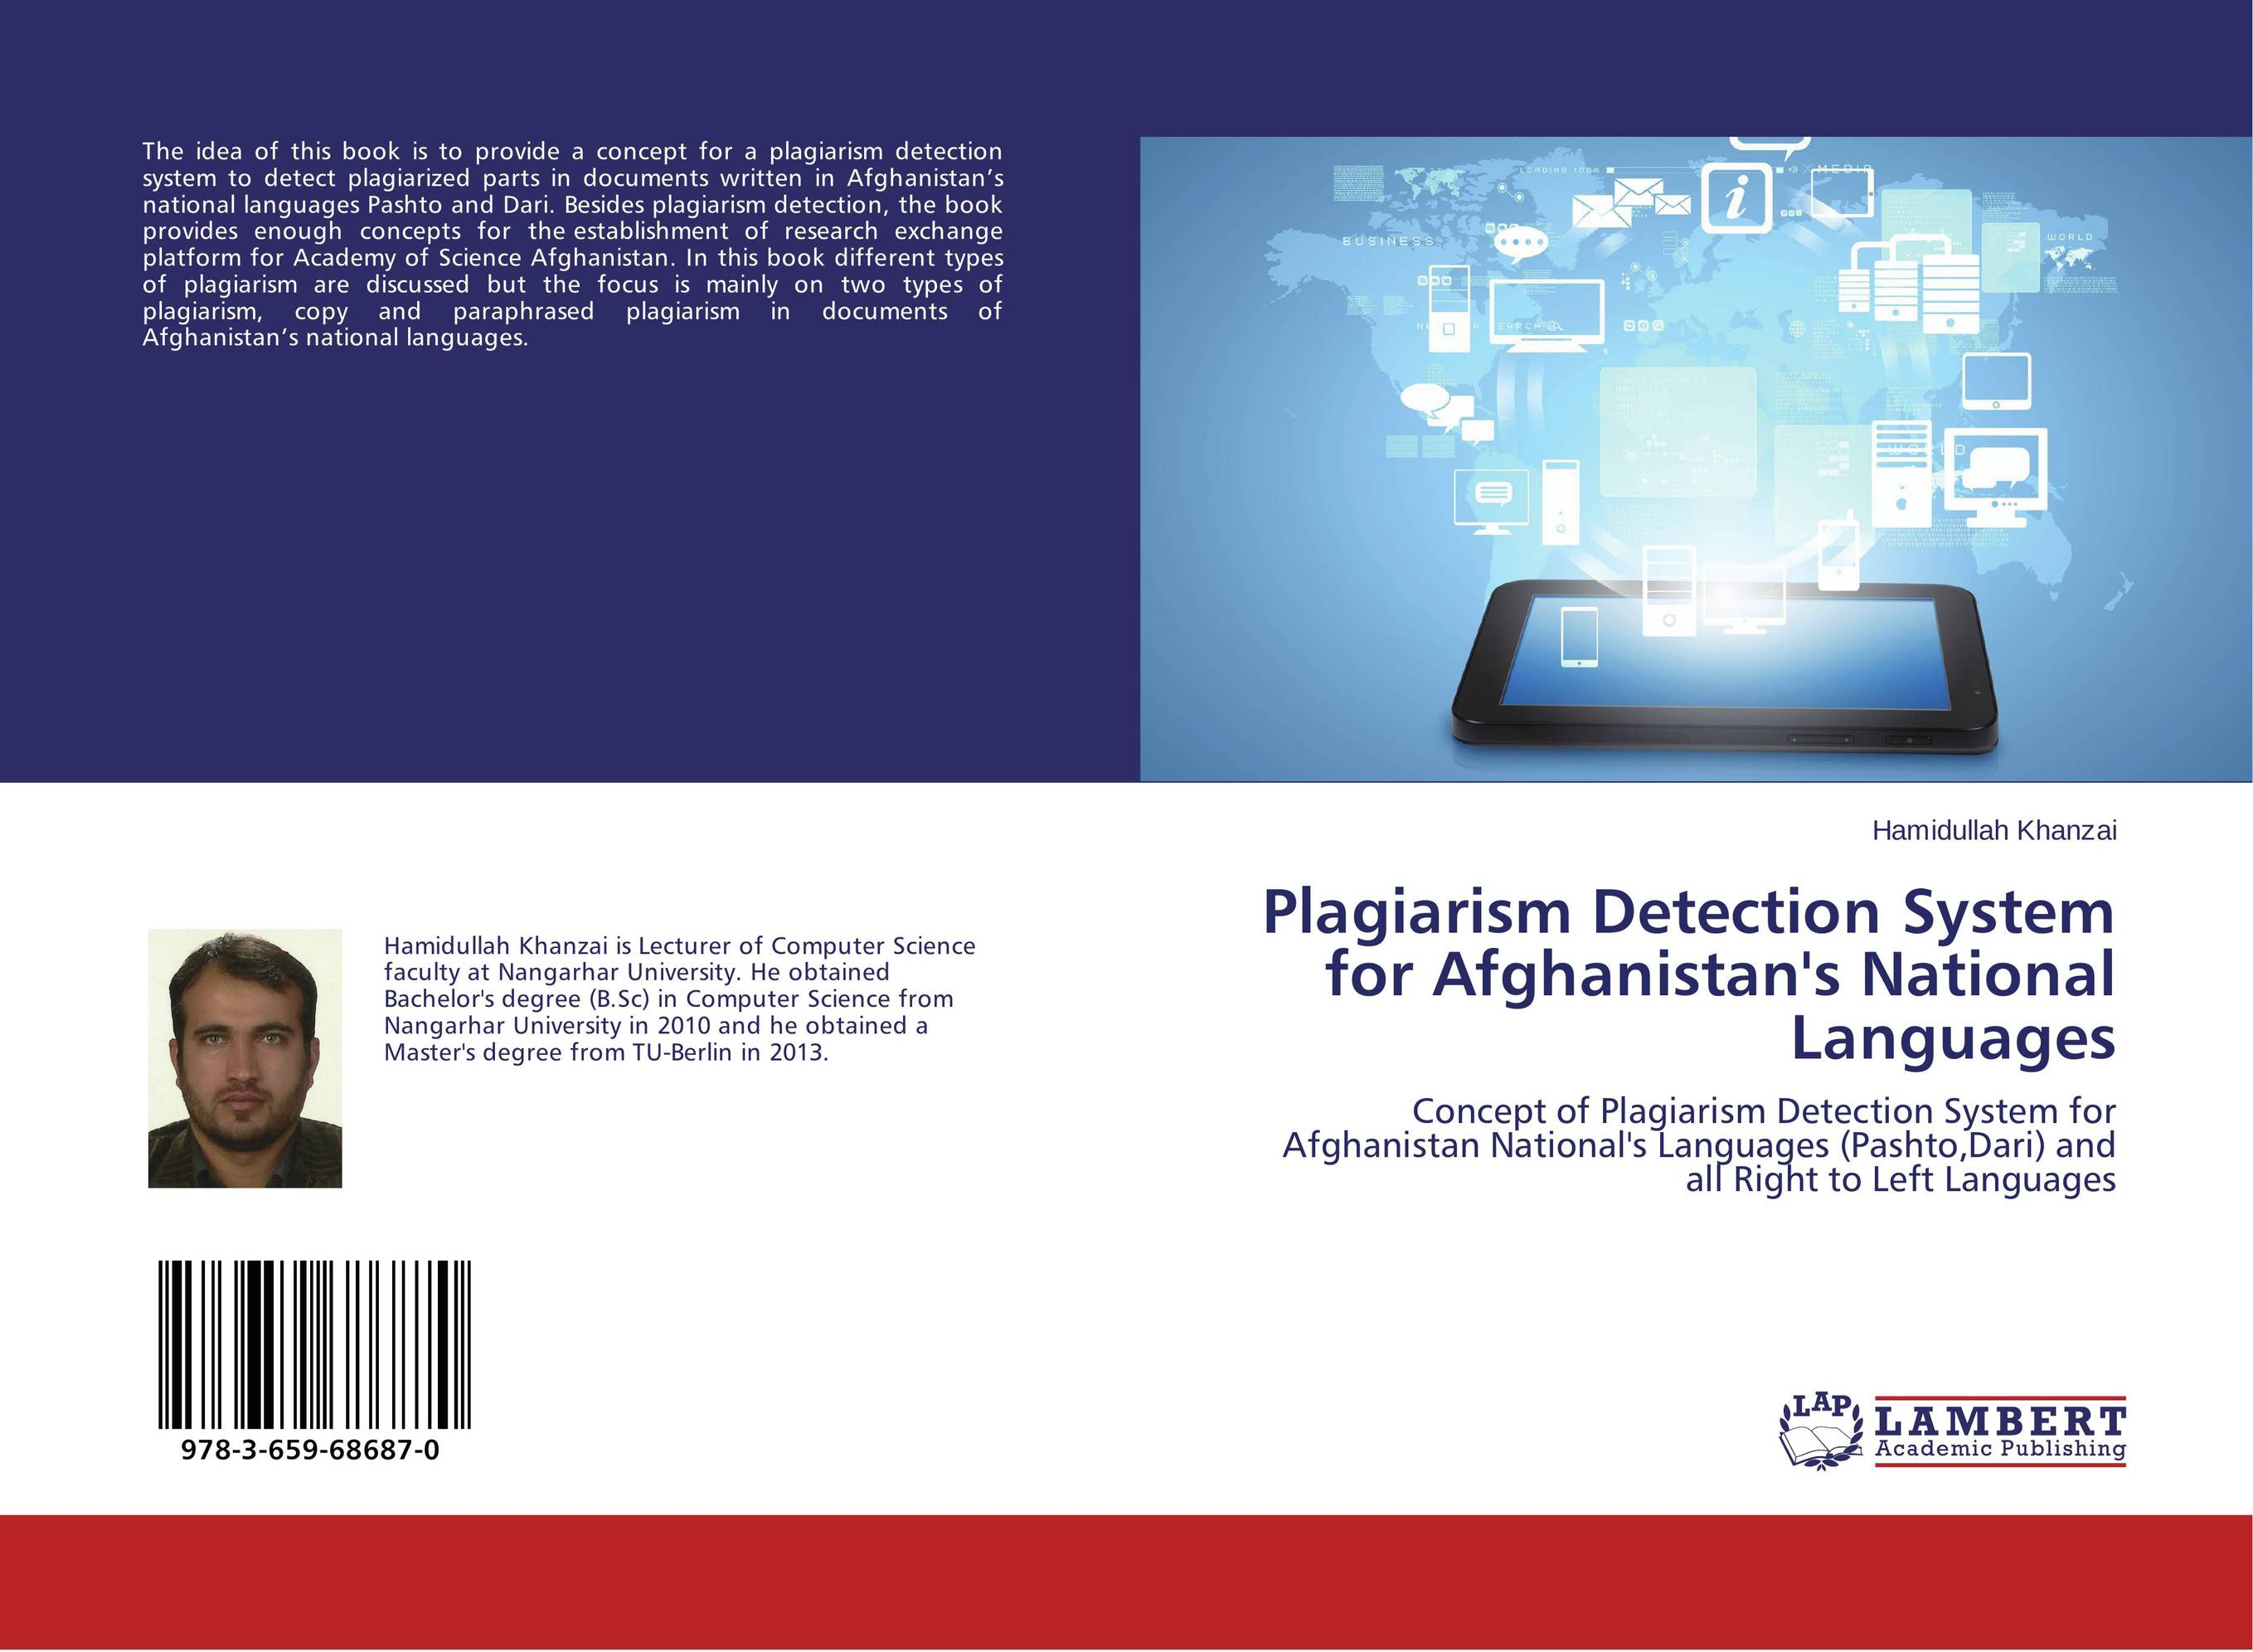 Plagiarism Detection System for Afghanistan's National Languages designing of an information retrieval system in veterinary science